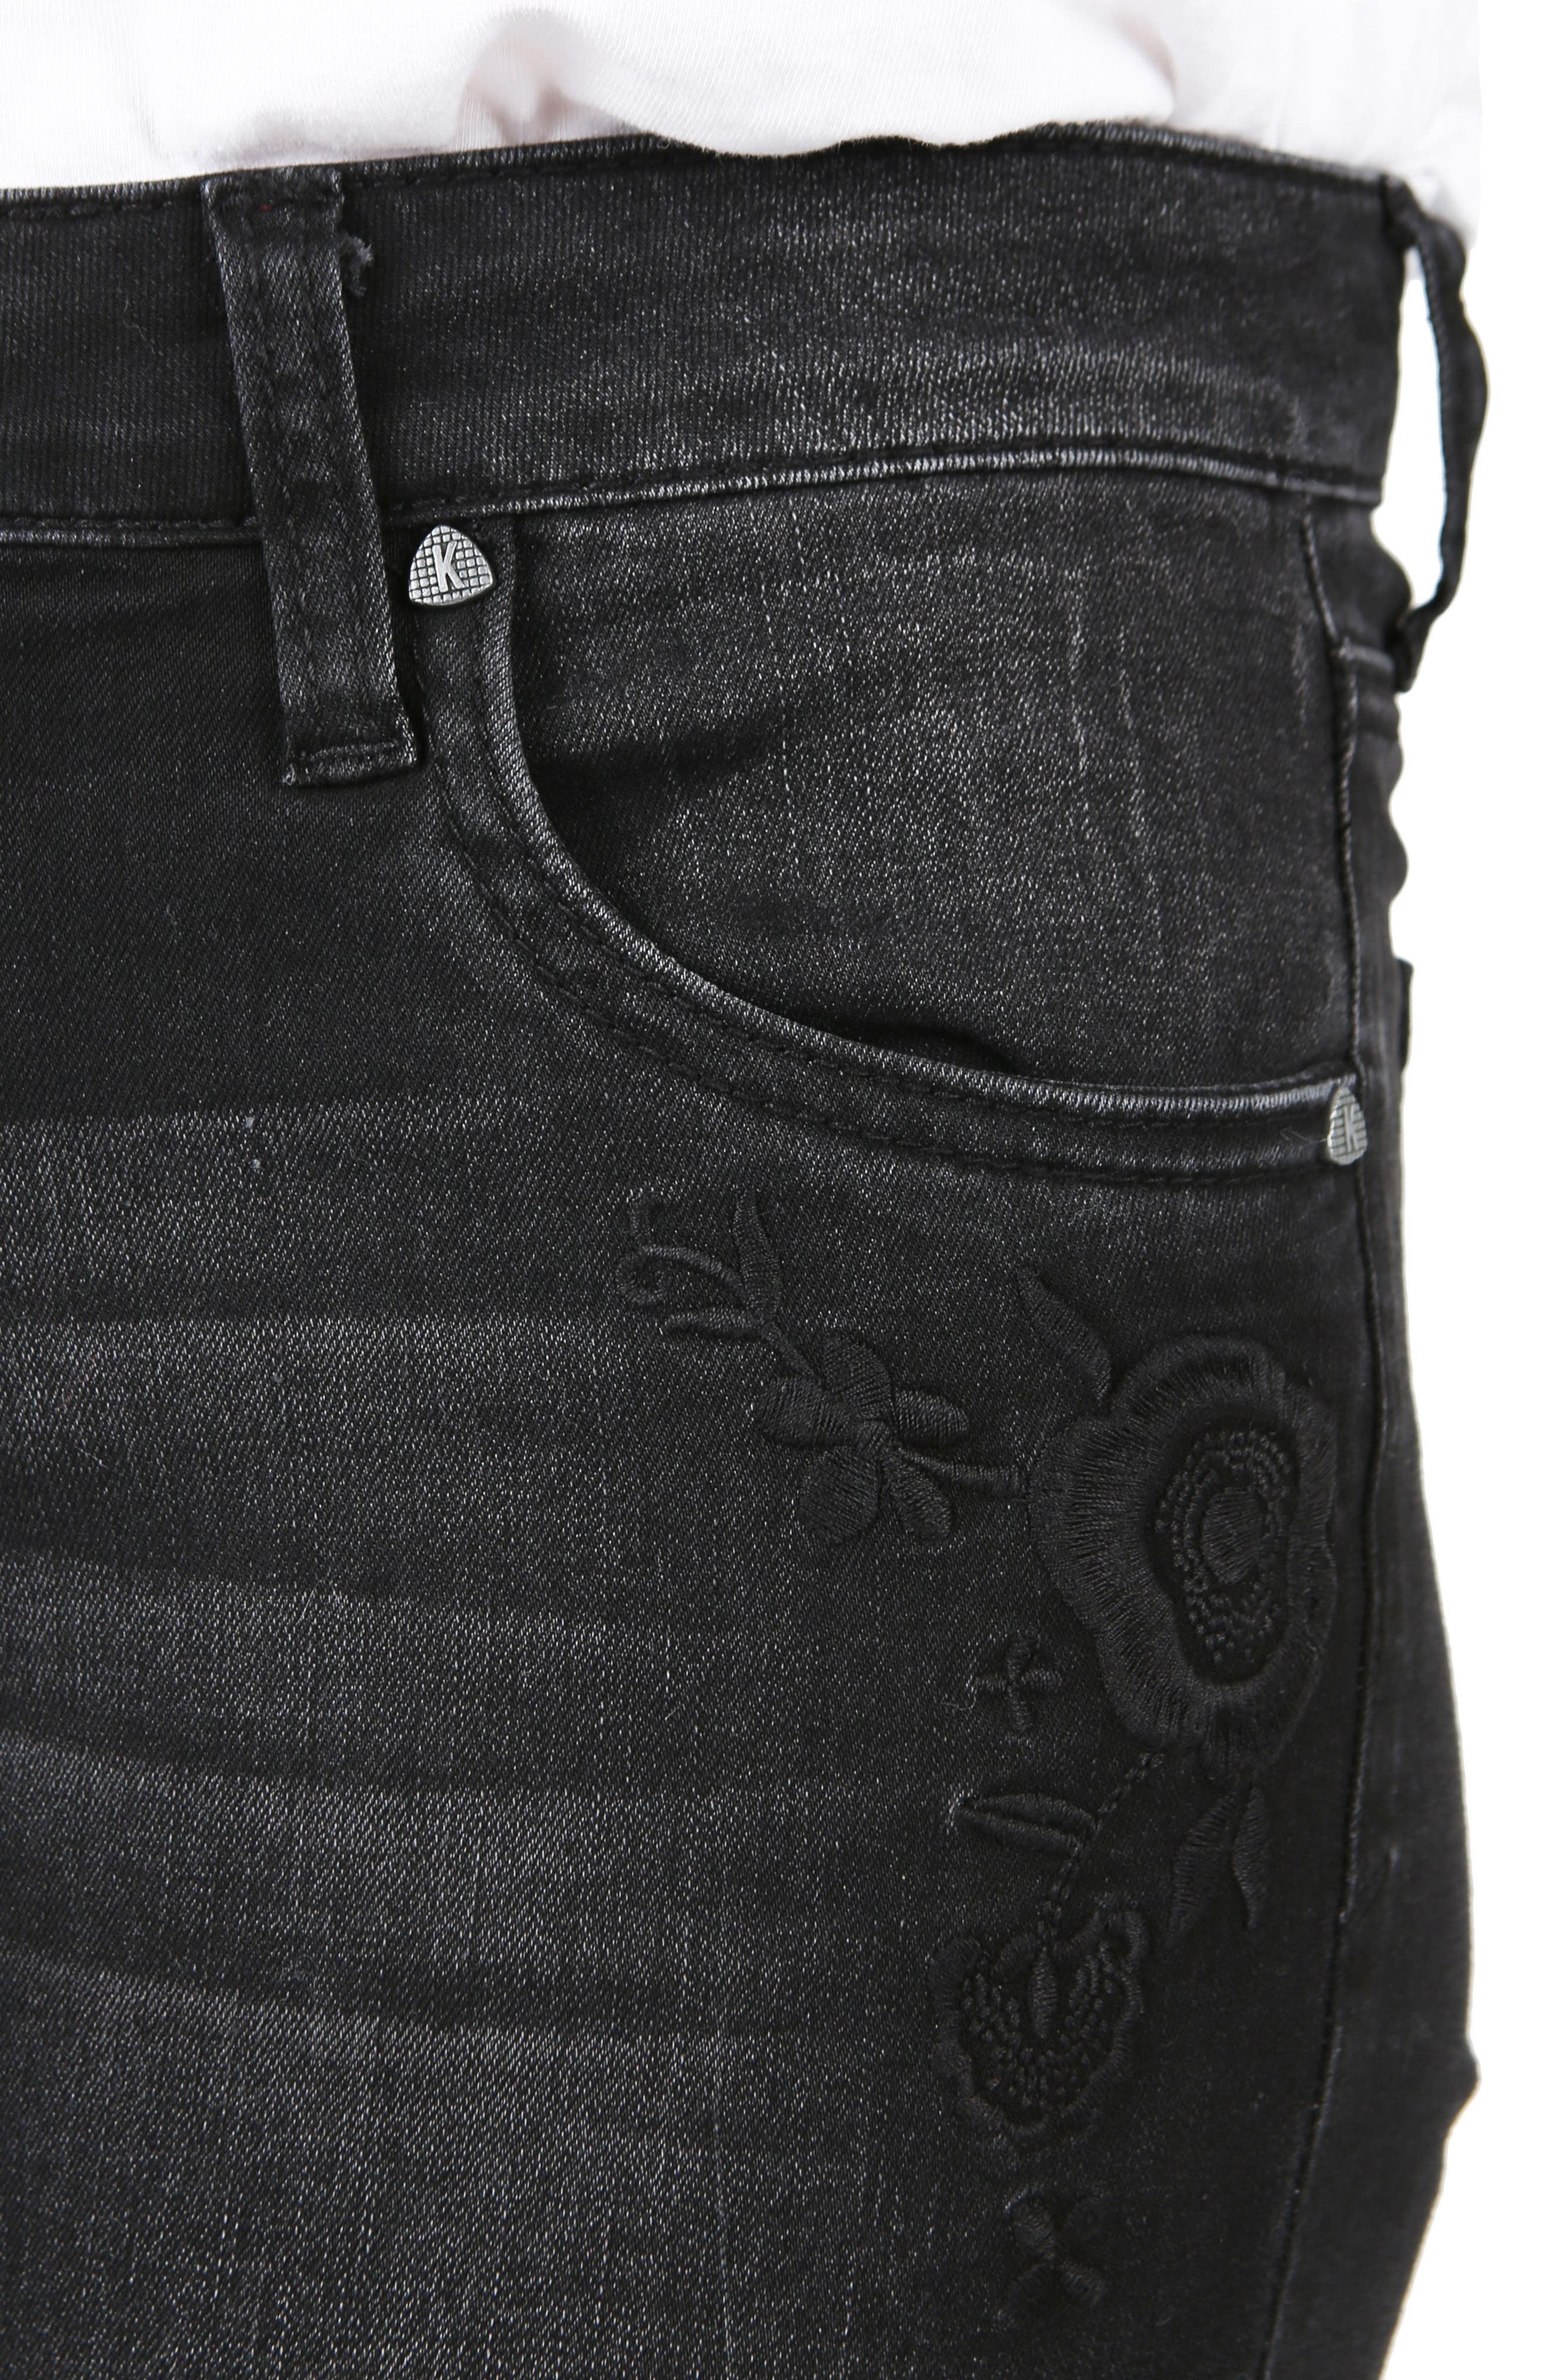 Mia Embroidered Skinny Jeans,                             Alternate thumbnail 4, color,                             030